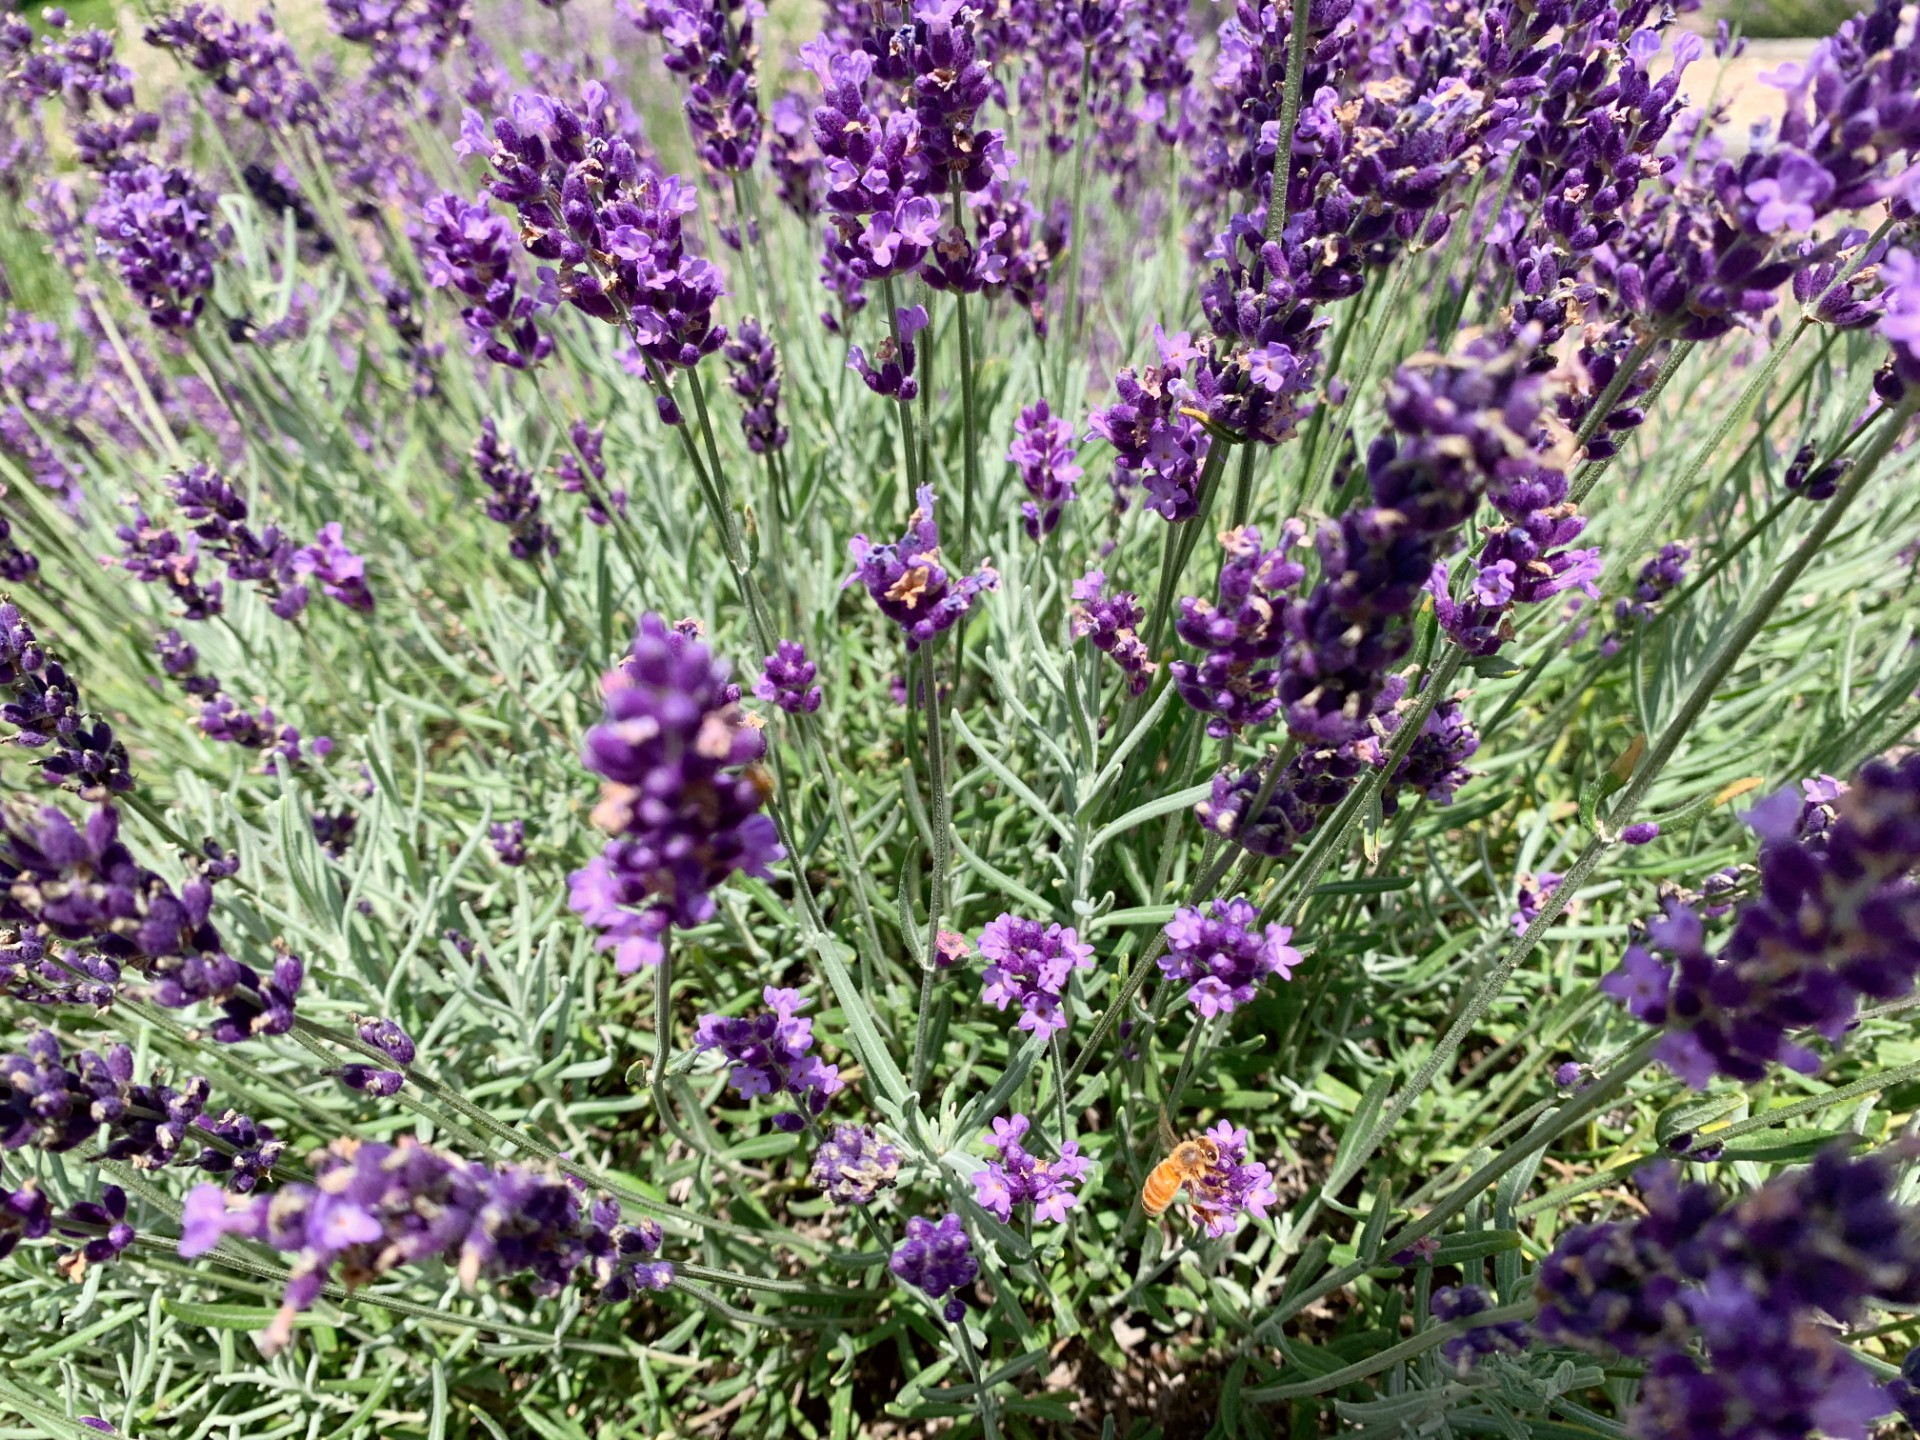 9 Reasons To Visit New Life Lavender And Cherry Farm In Baraboo O The Places We Go